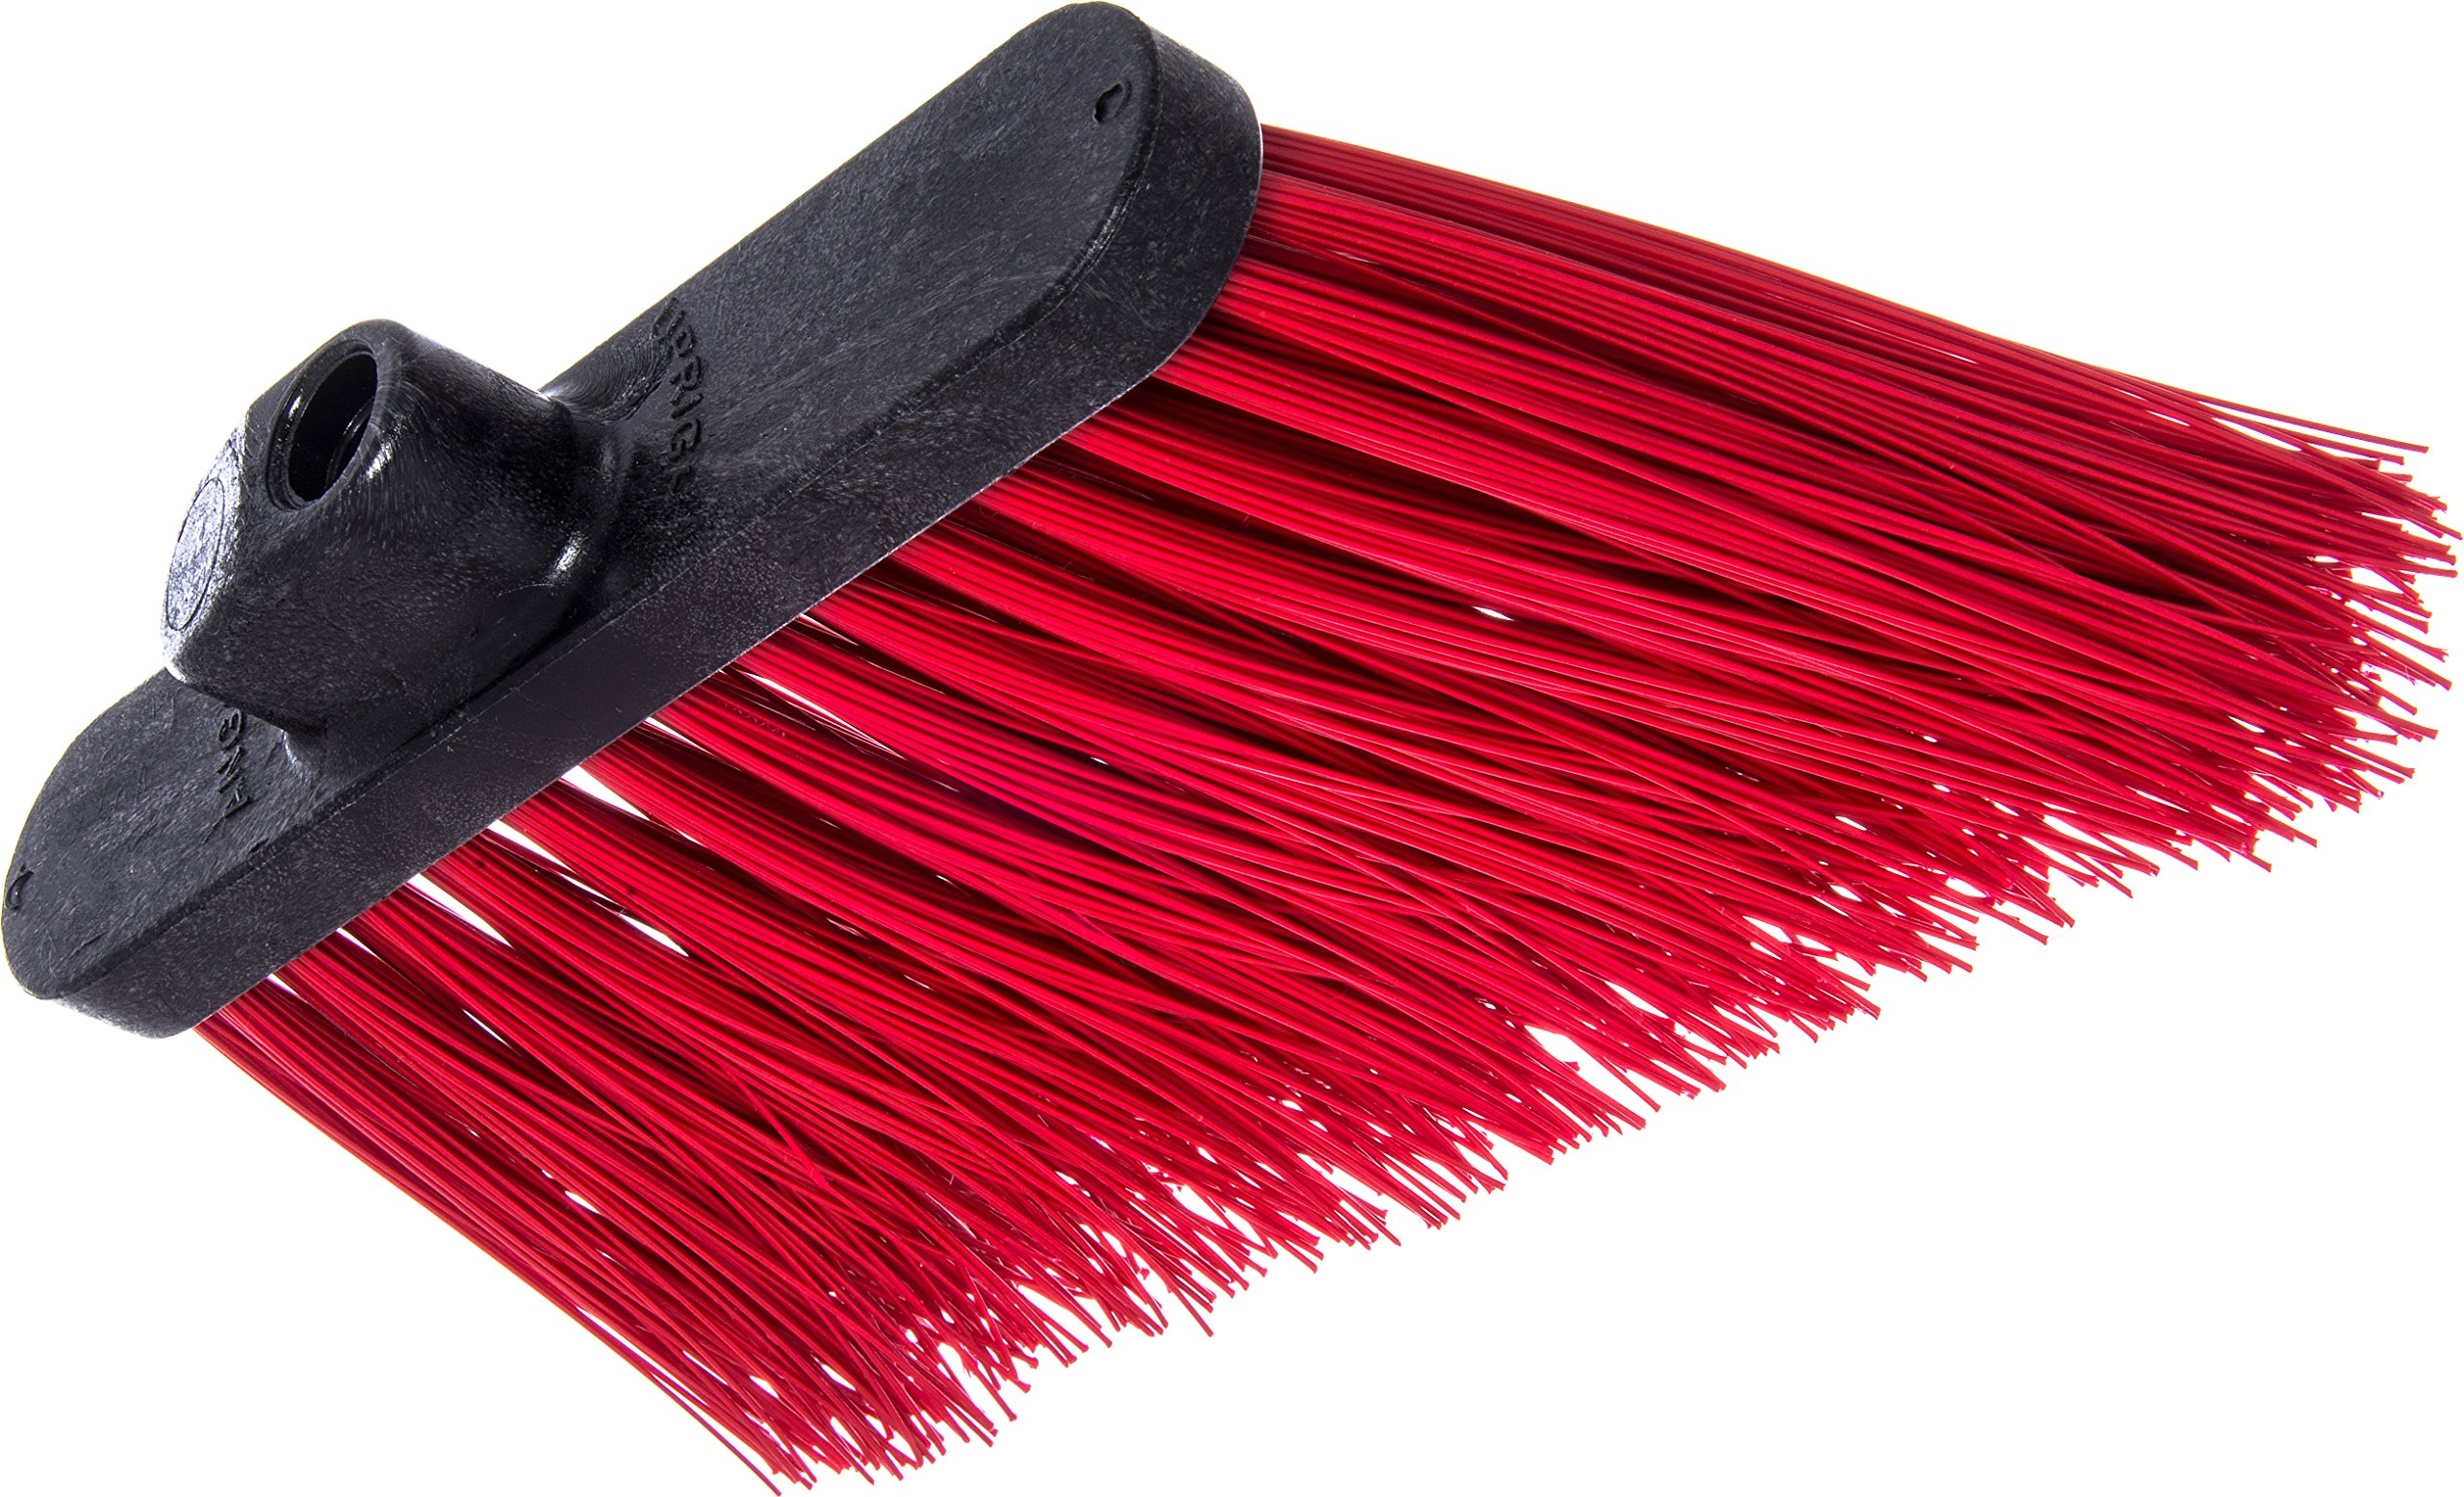 Carlisle 3686805 Duo-Sweep UnFlagged Angle Broom Head, 8'', Red